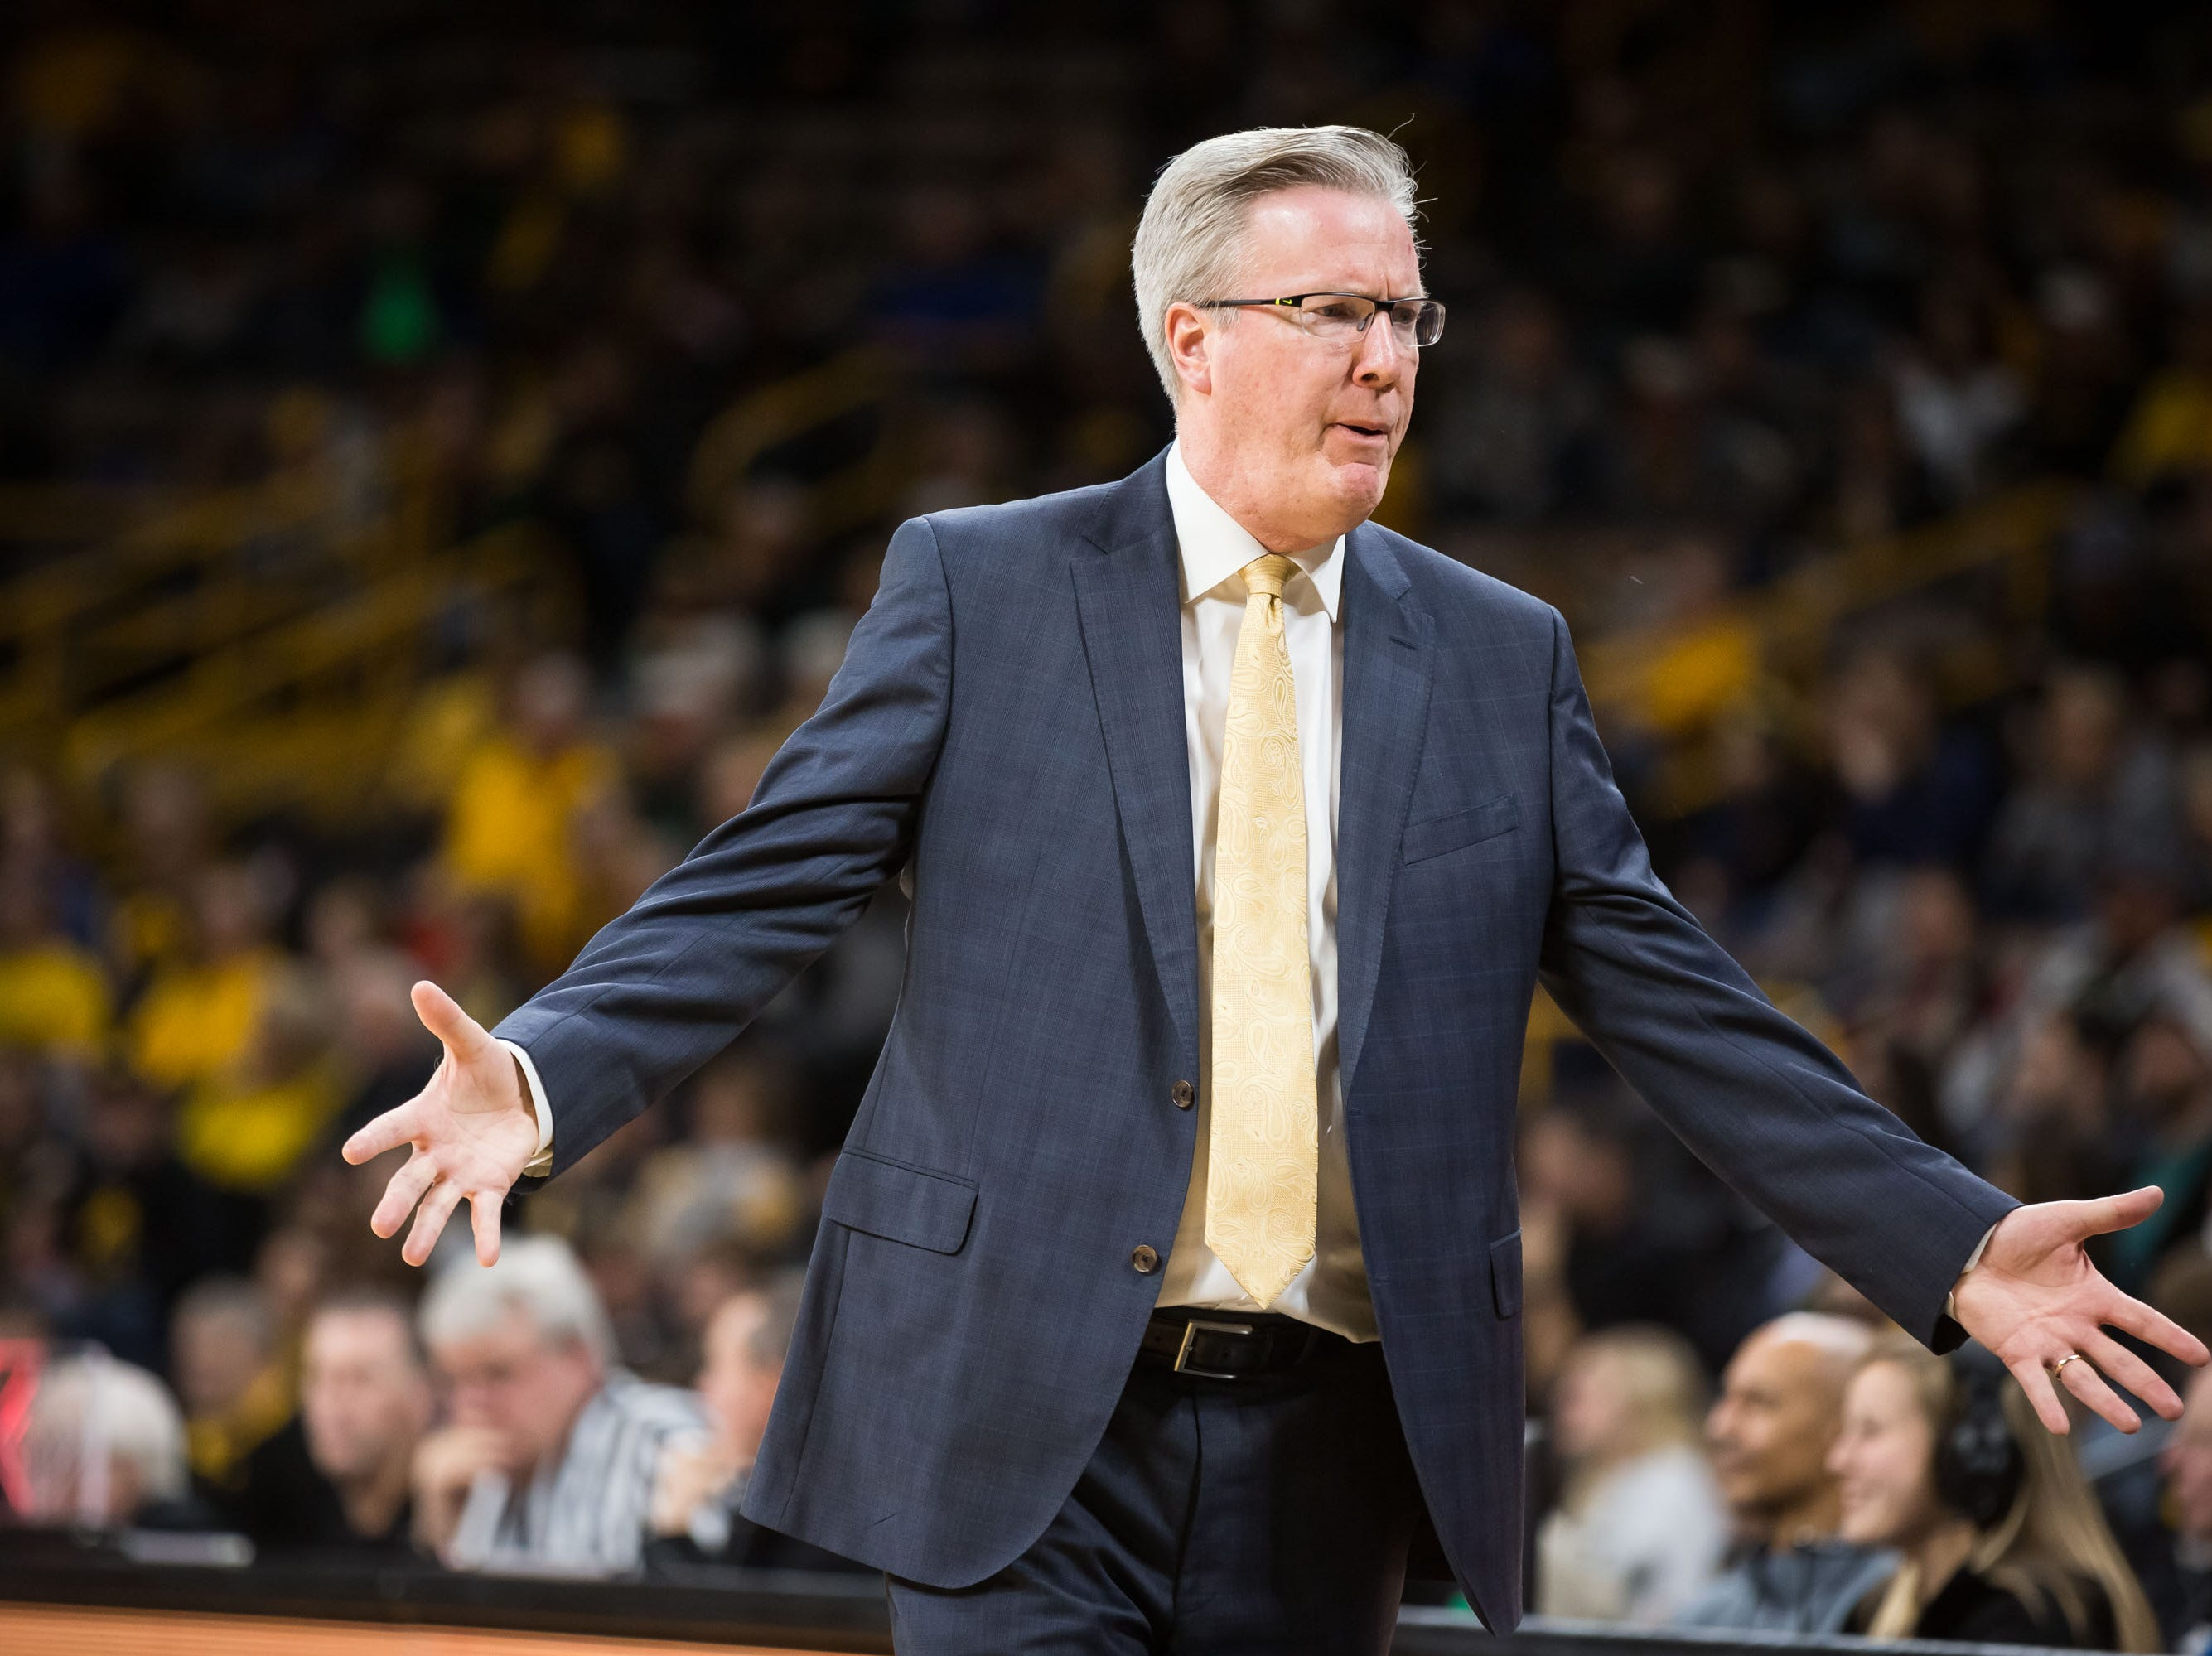 Iowa head coach Fran McCaffery addresses the Hawkeye bench in the second half at Carver Hawkeye Arena in Iowa City on Tuesday, Dec. 18, 2018.